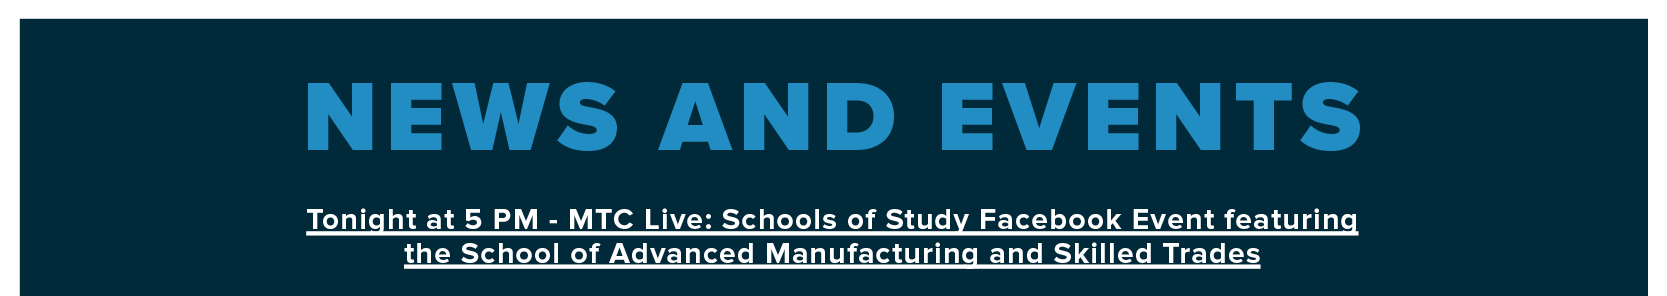 NEWS AND EVENTS: Tonight at 5 PM – MTC Live: Schools of Study Facebook Event featuring the School of Advanced Manufacturing and Skilled Trades